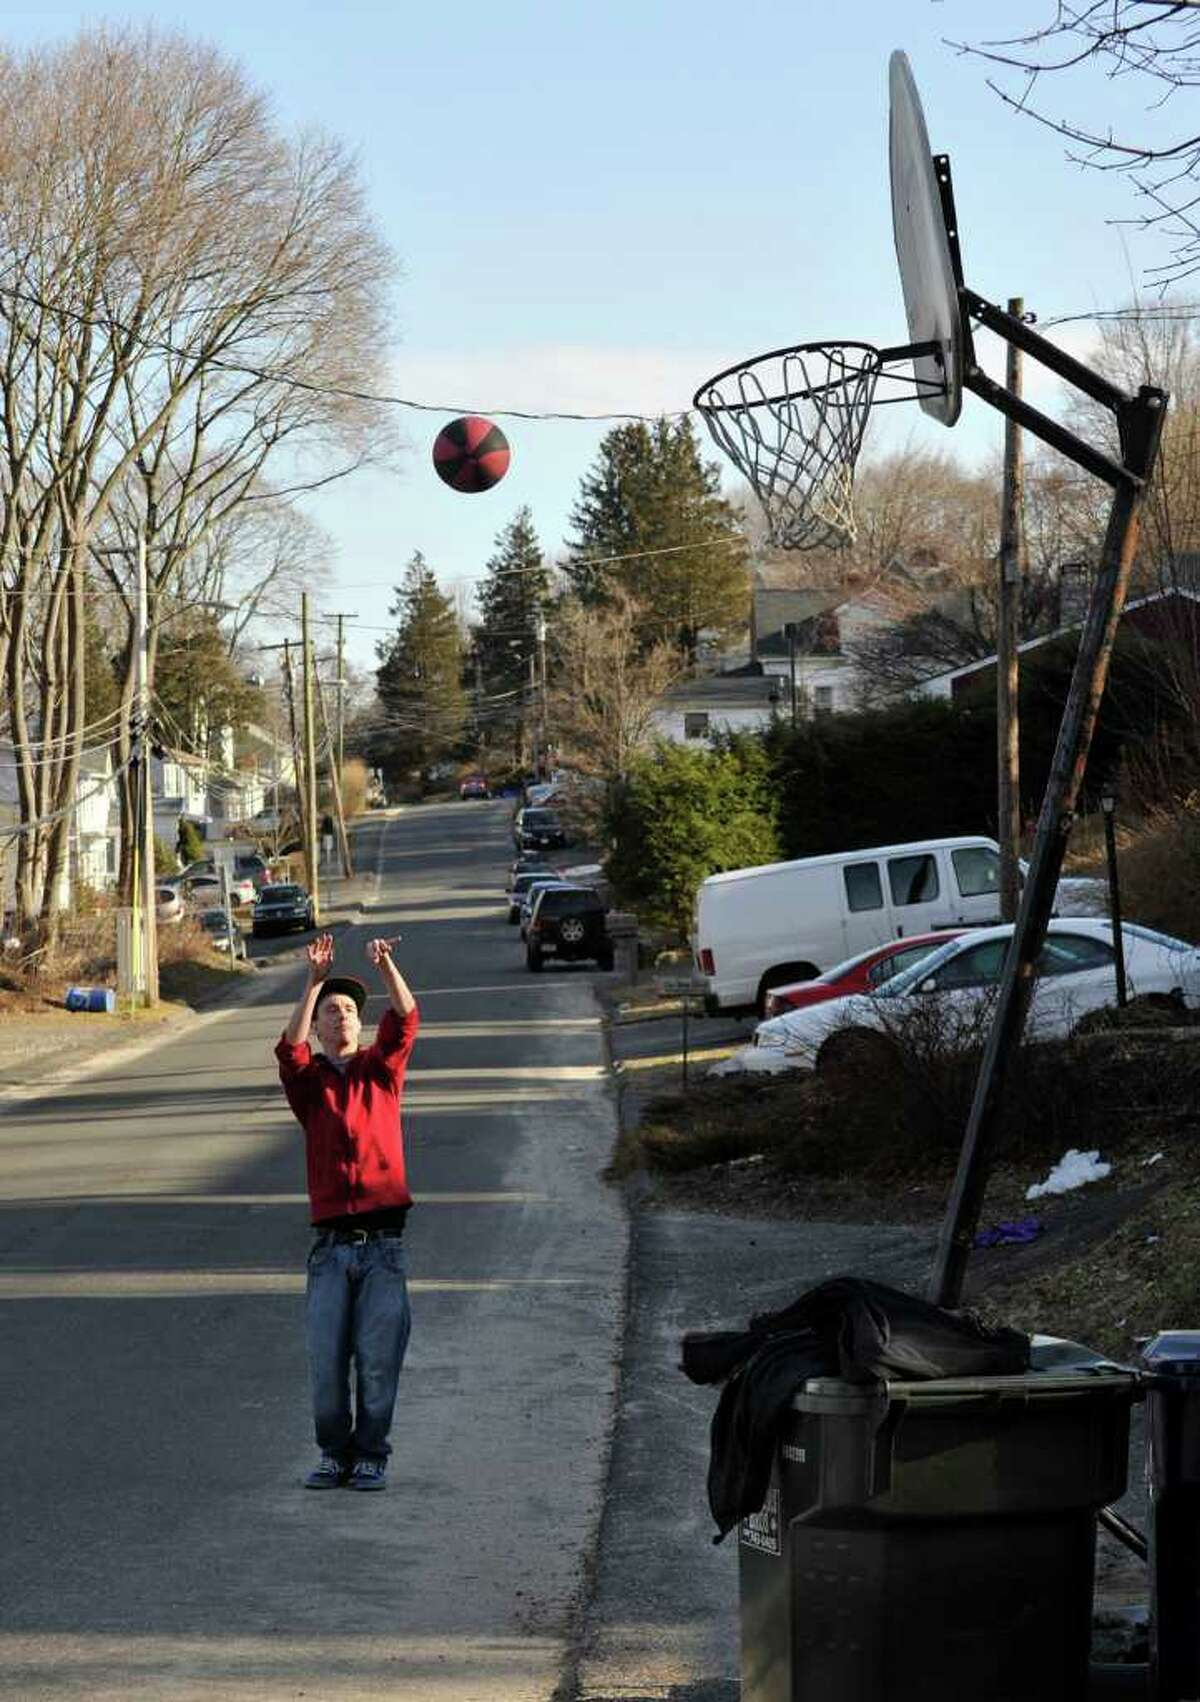 Mike Jones, of Danbury, shoots basketball with friends on Staples Street on Tuesday, March 6, 2012.